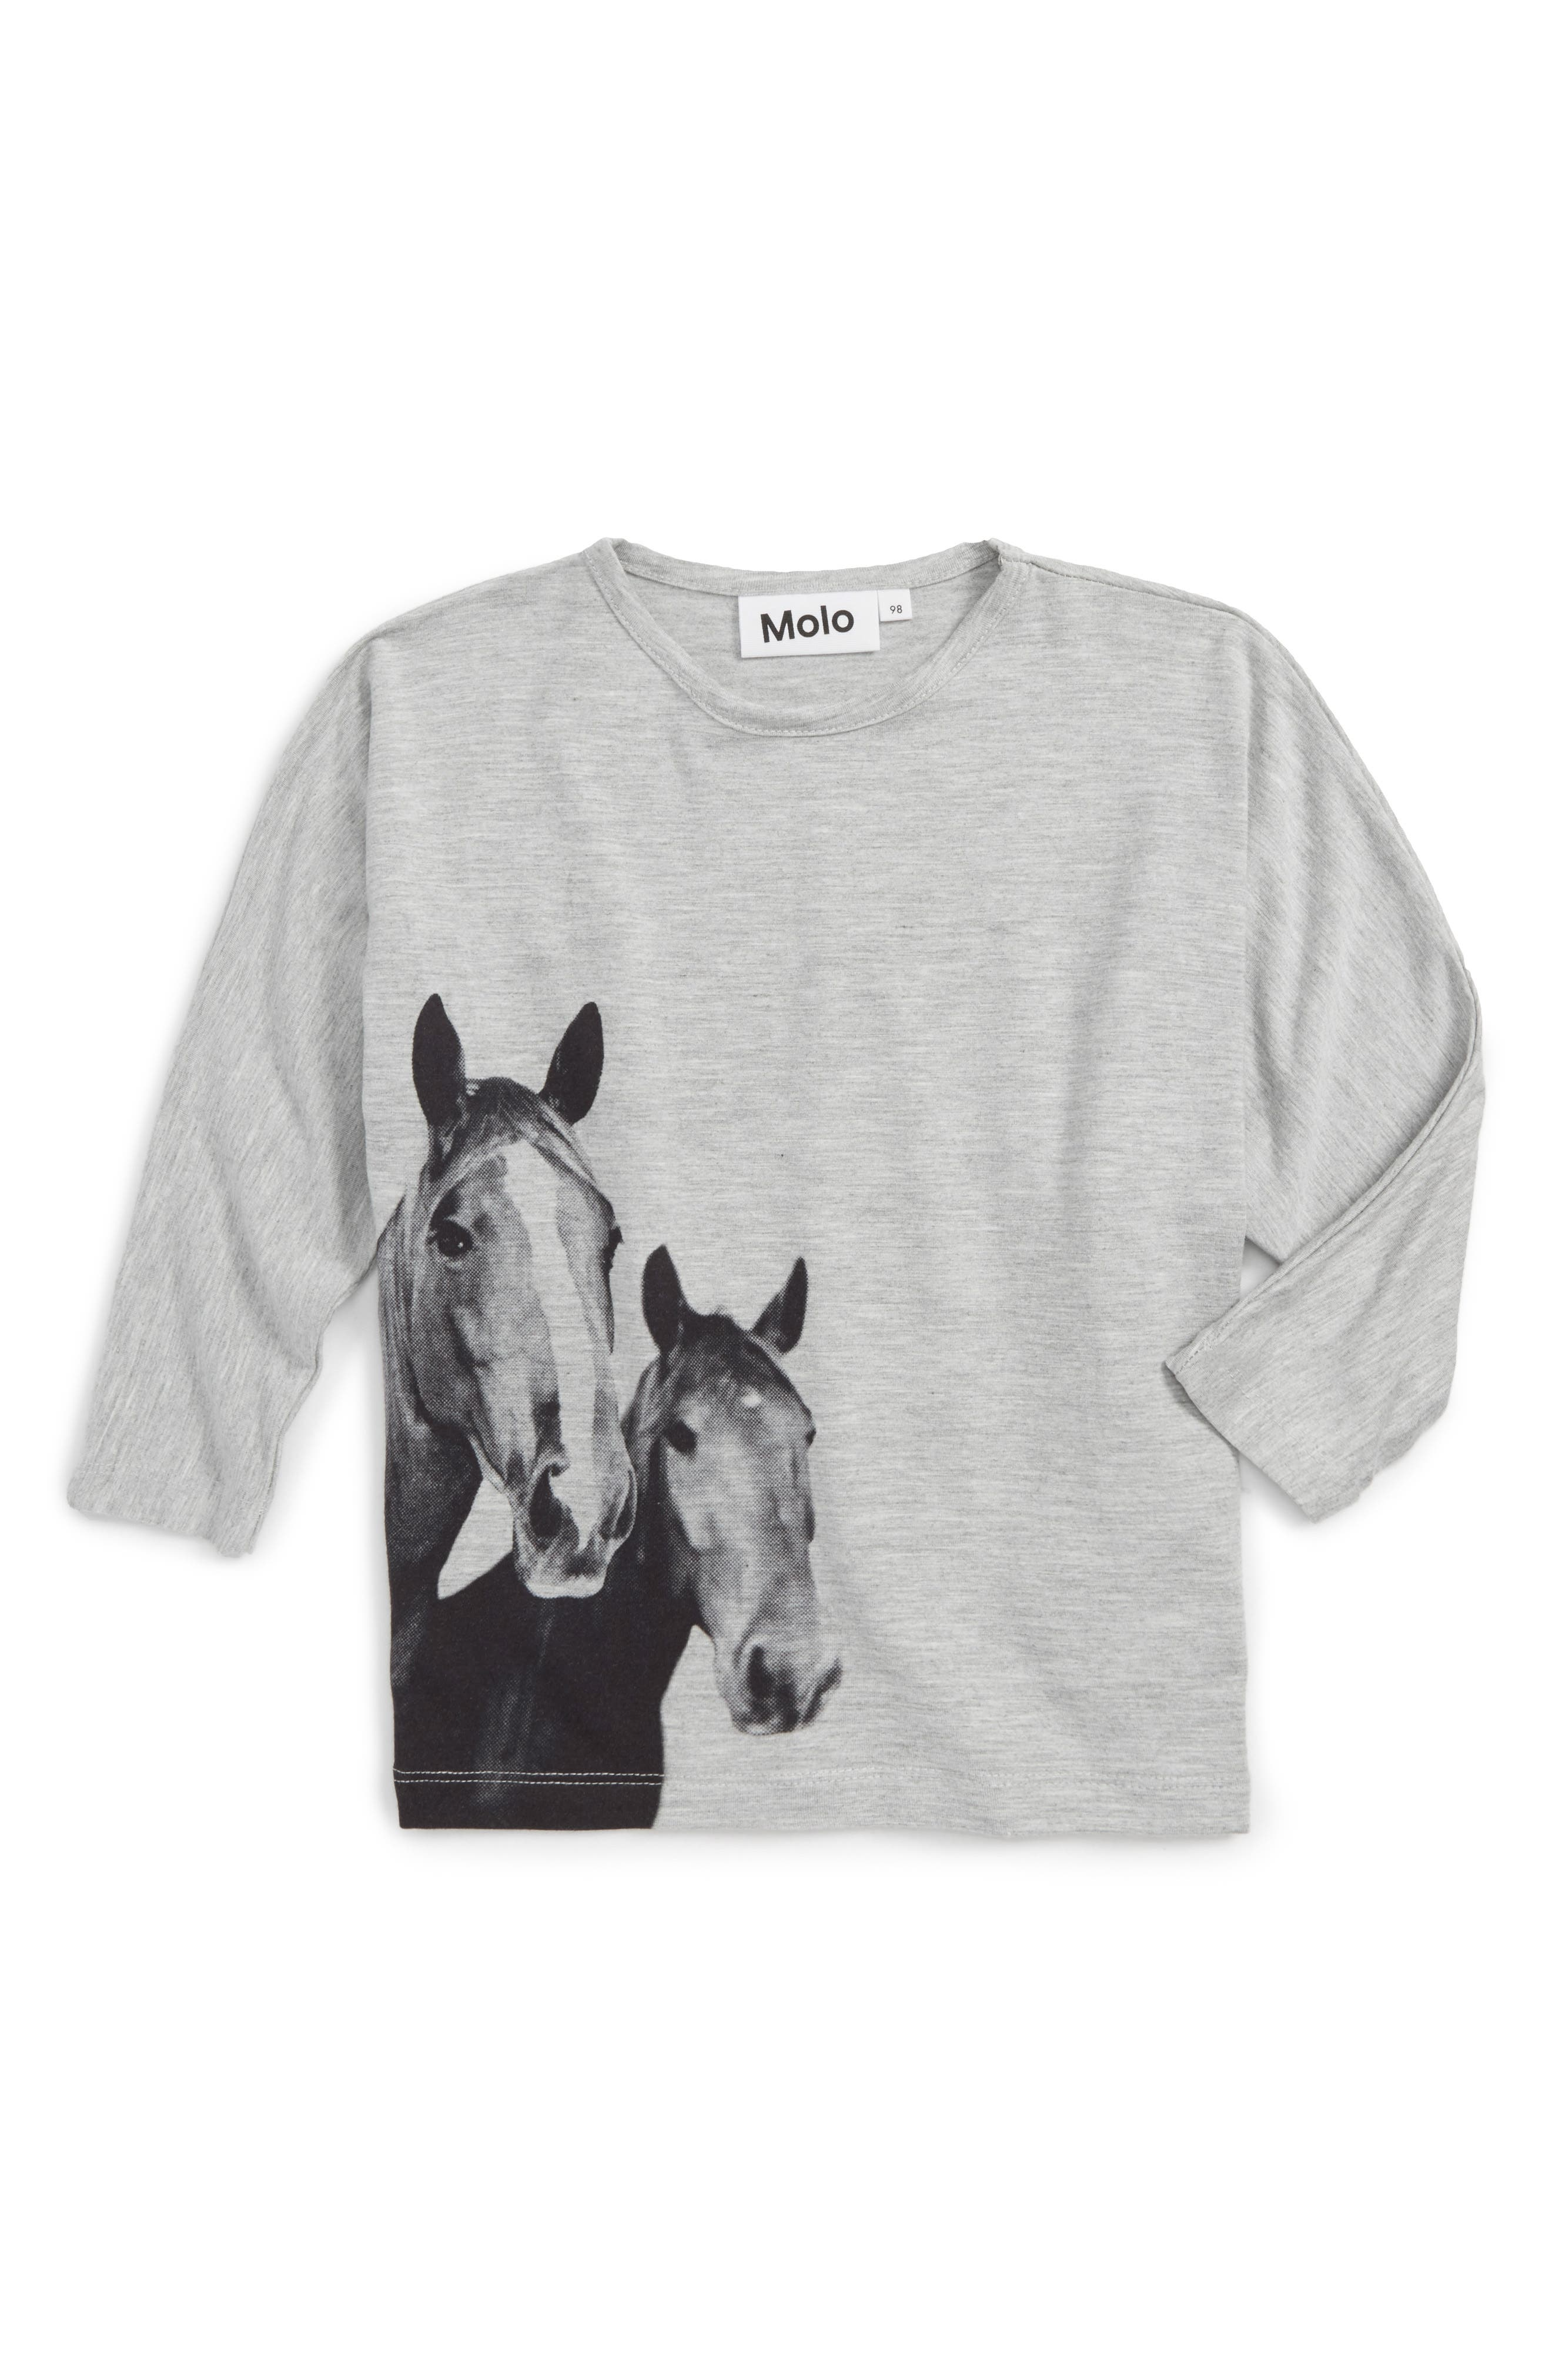 Molo Rosey Horse Graphic Tee (Toddler Girls, Little Girls & Big Girls)